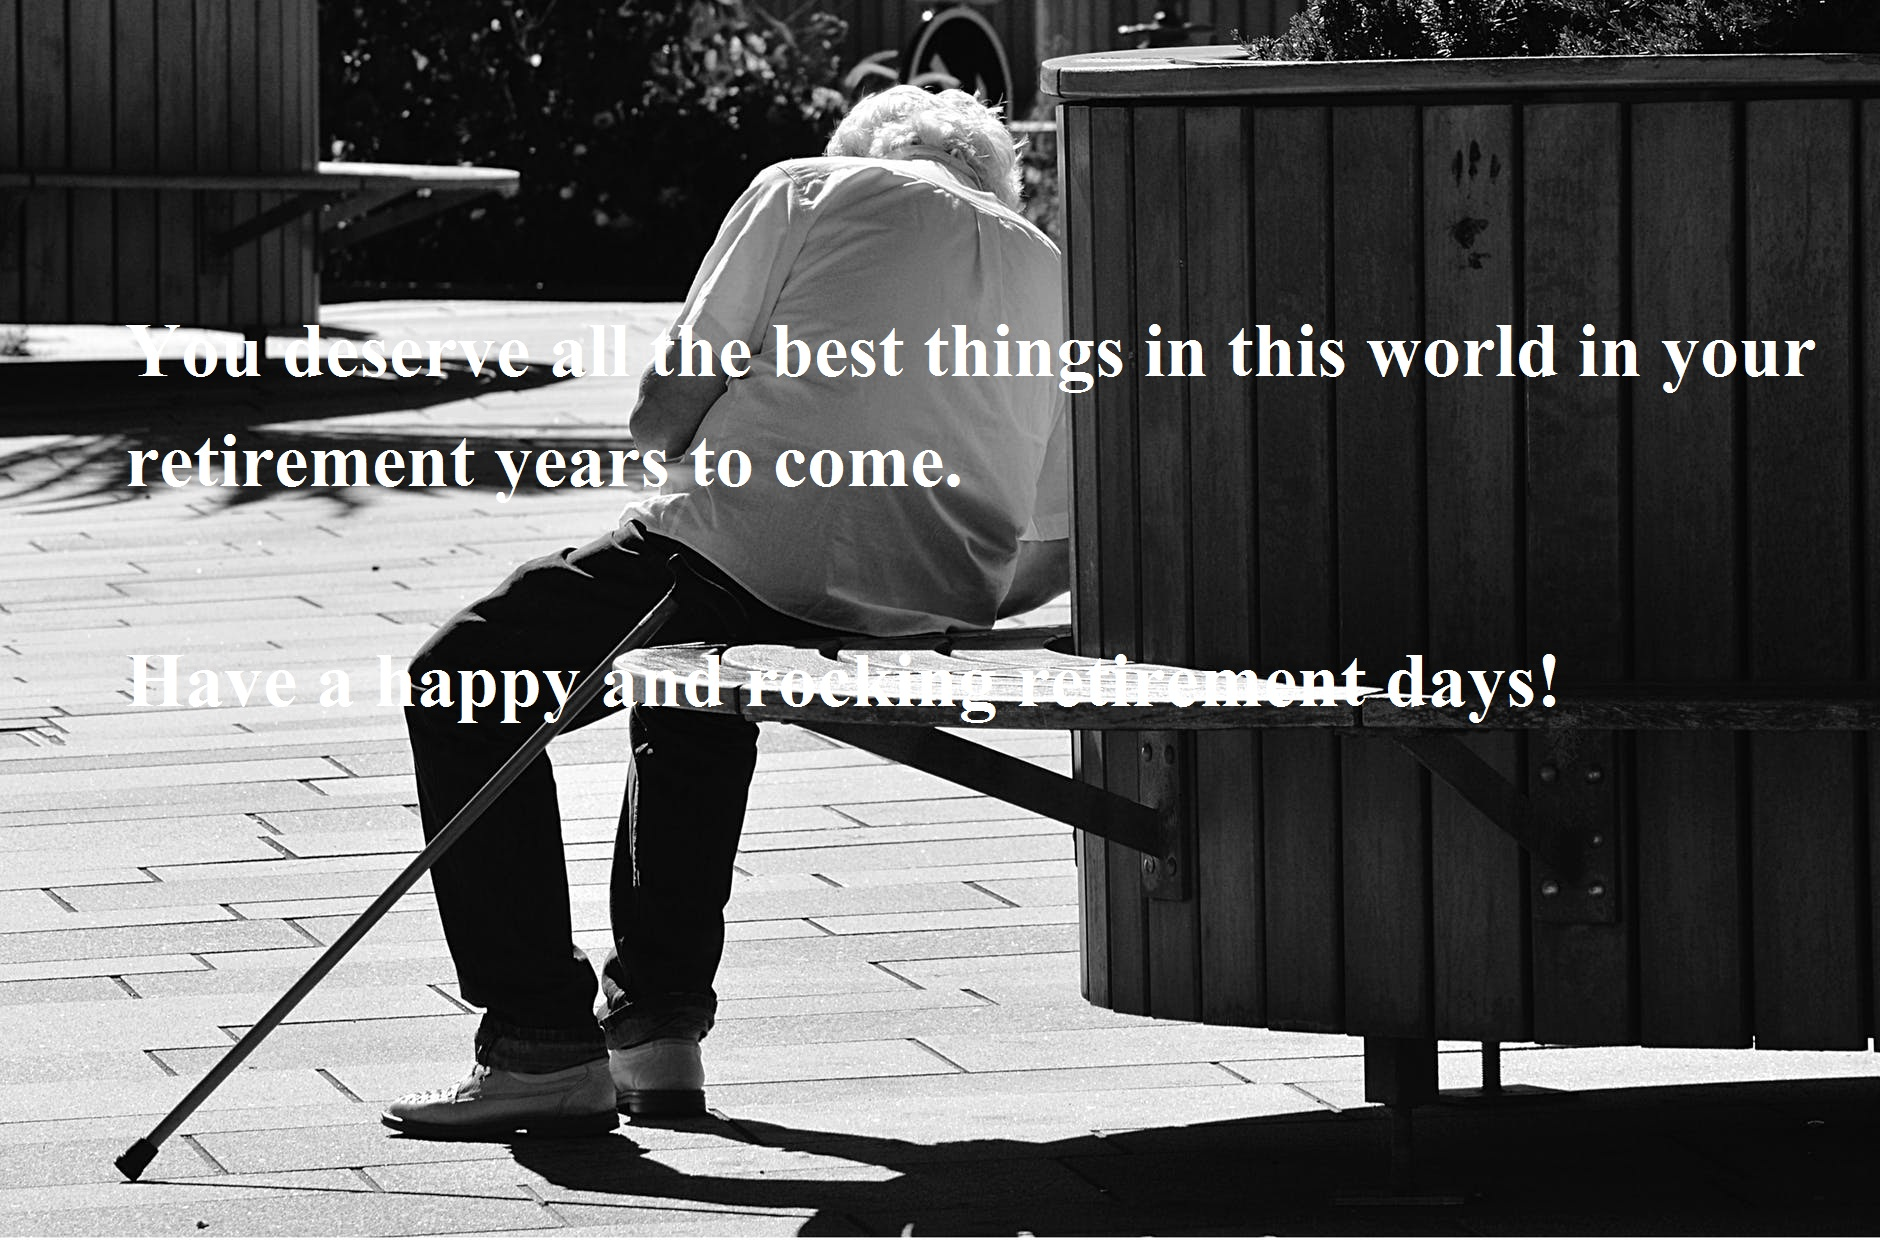 Inspirational Retirement Day Wishes